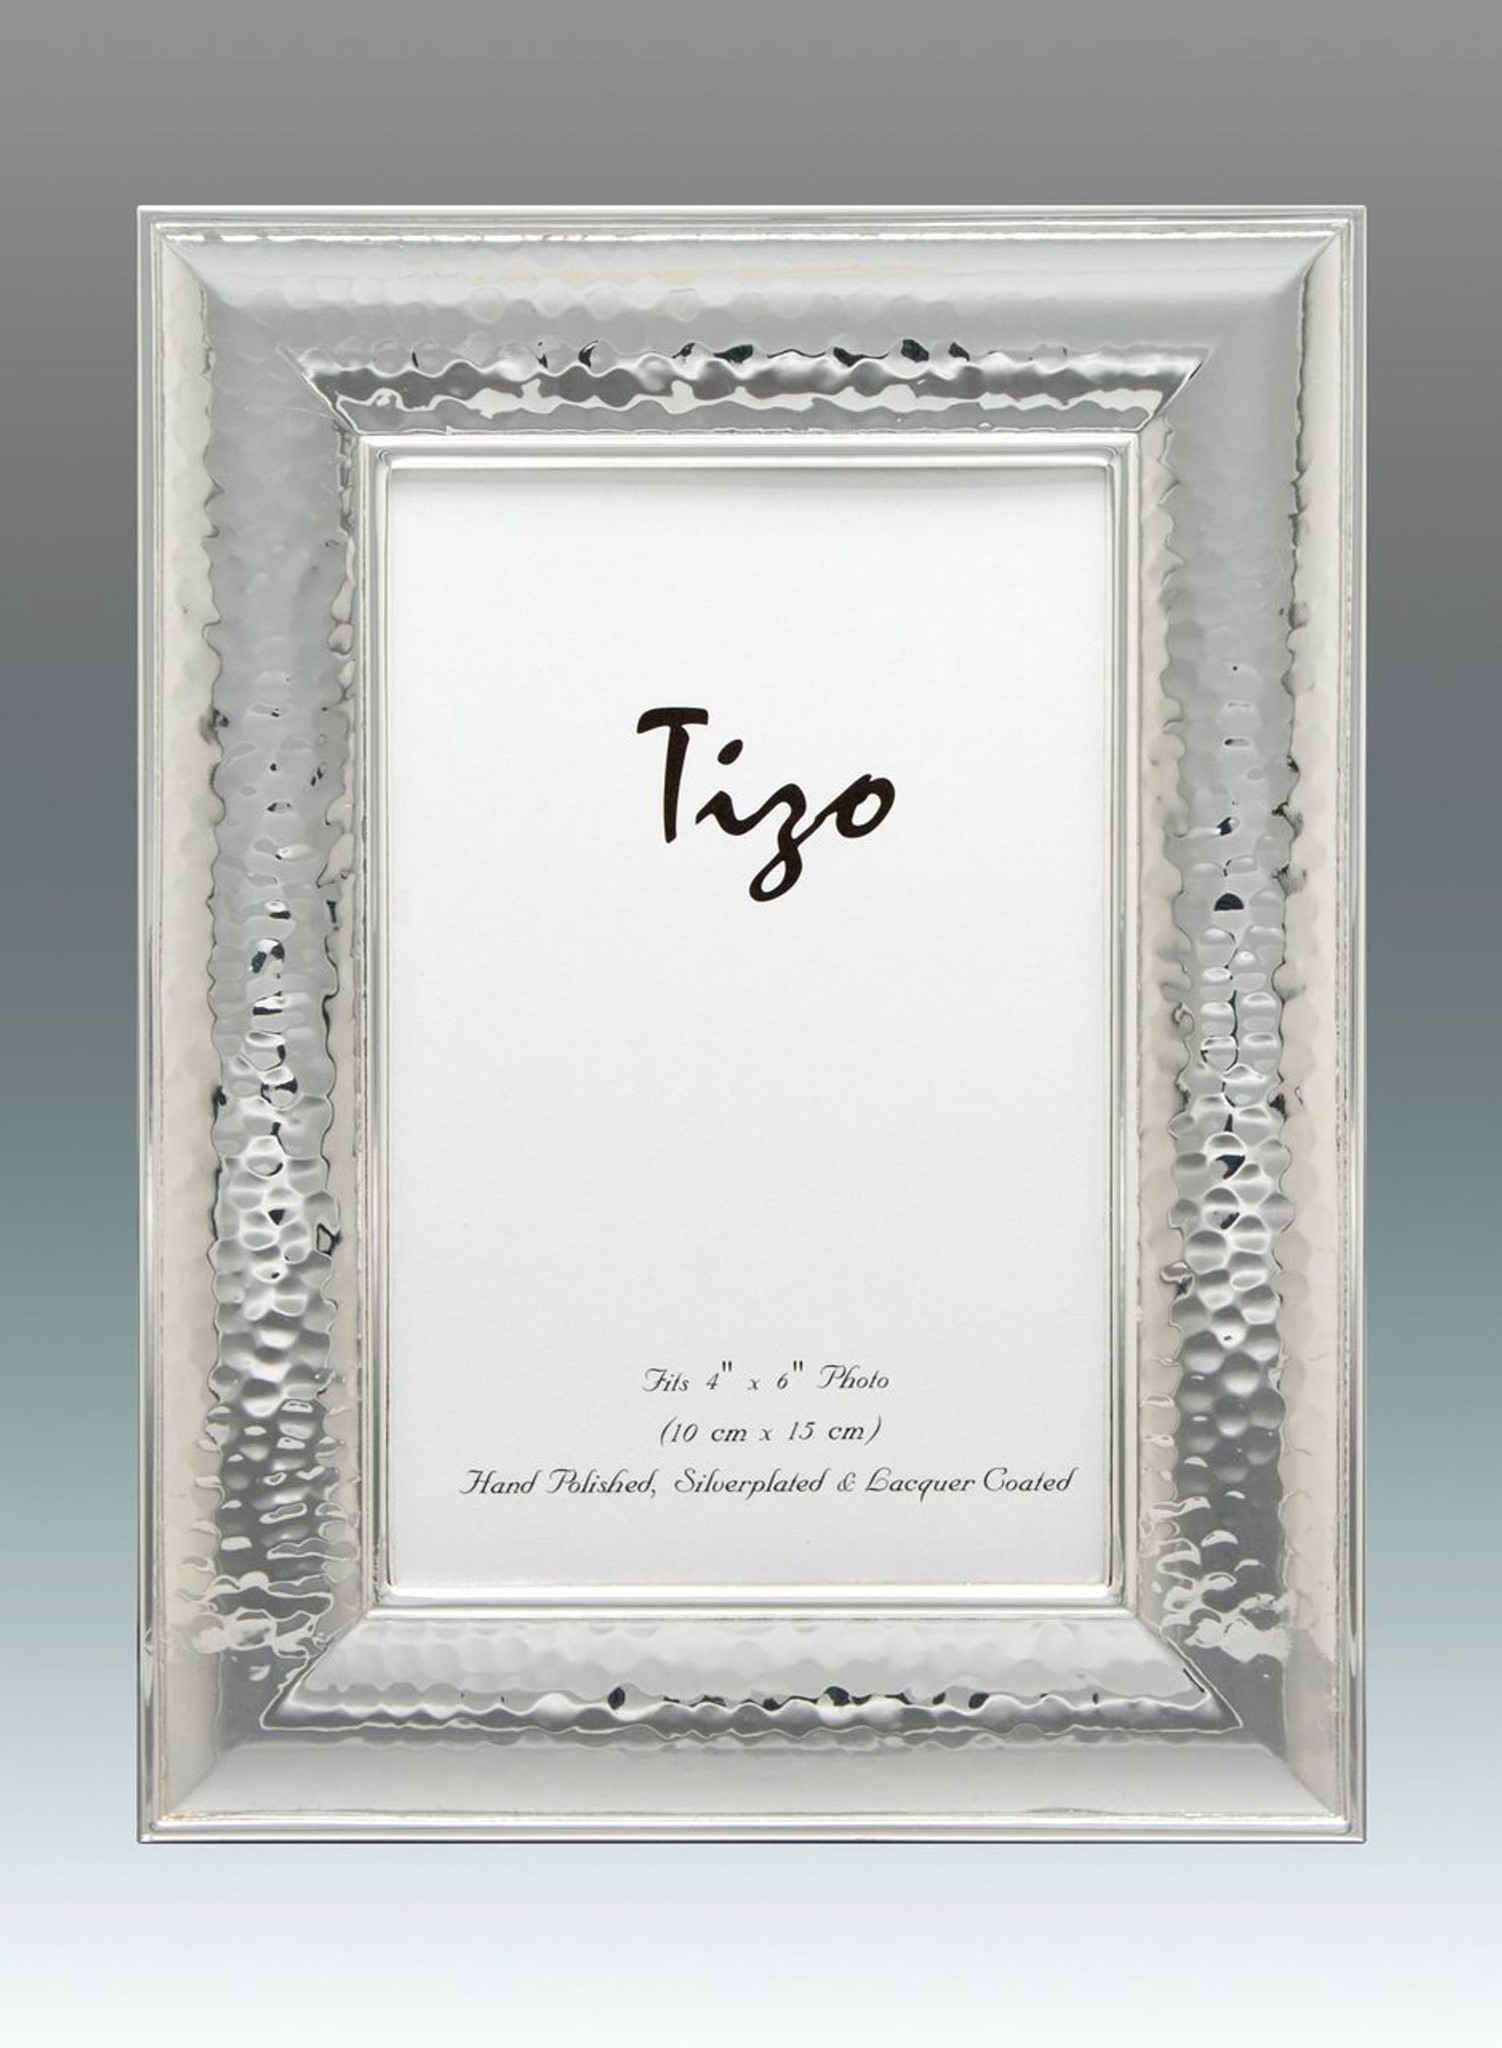 Tizo Tick Hammered 8 x 10 Inch Silver Plated Picture Frame - HomeBello